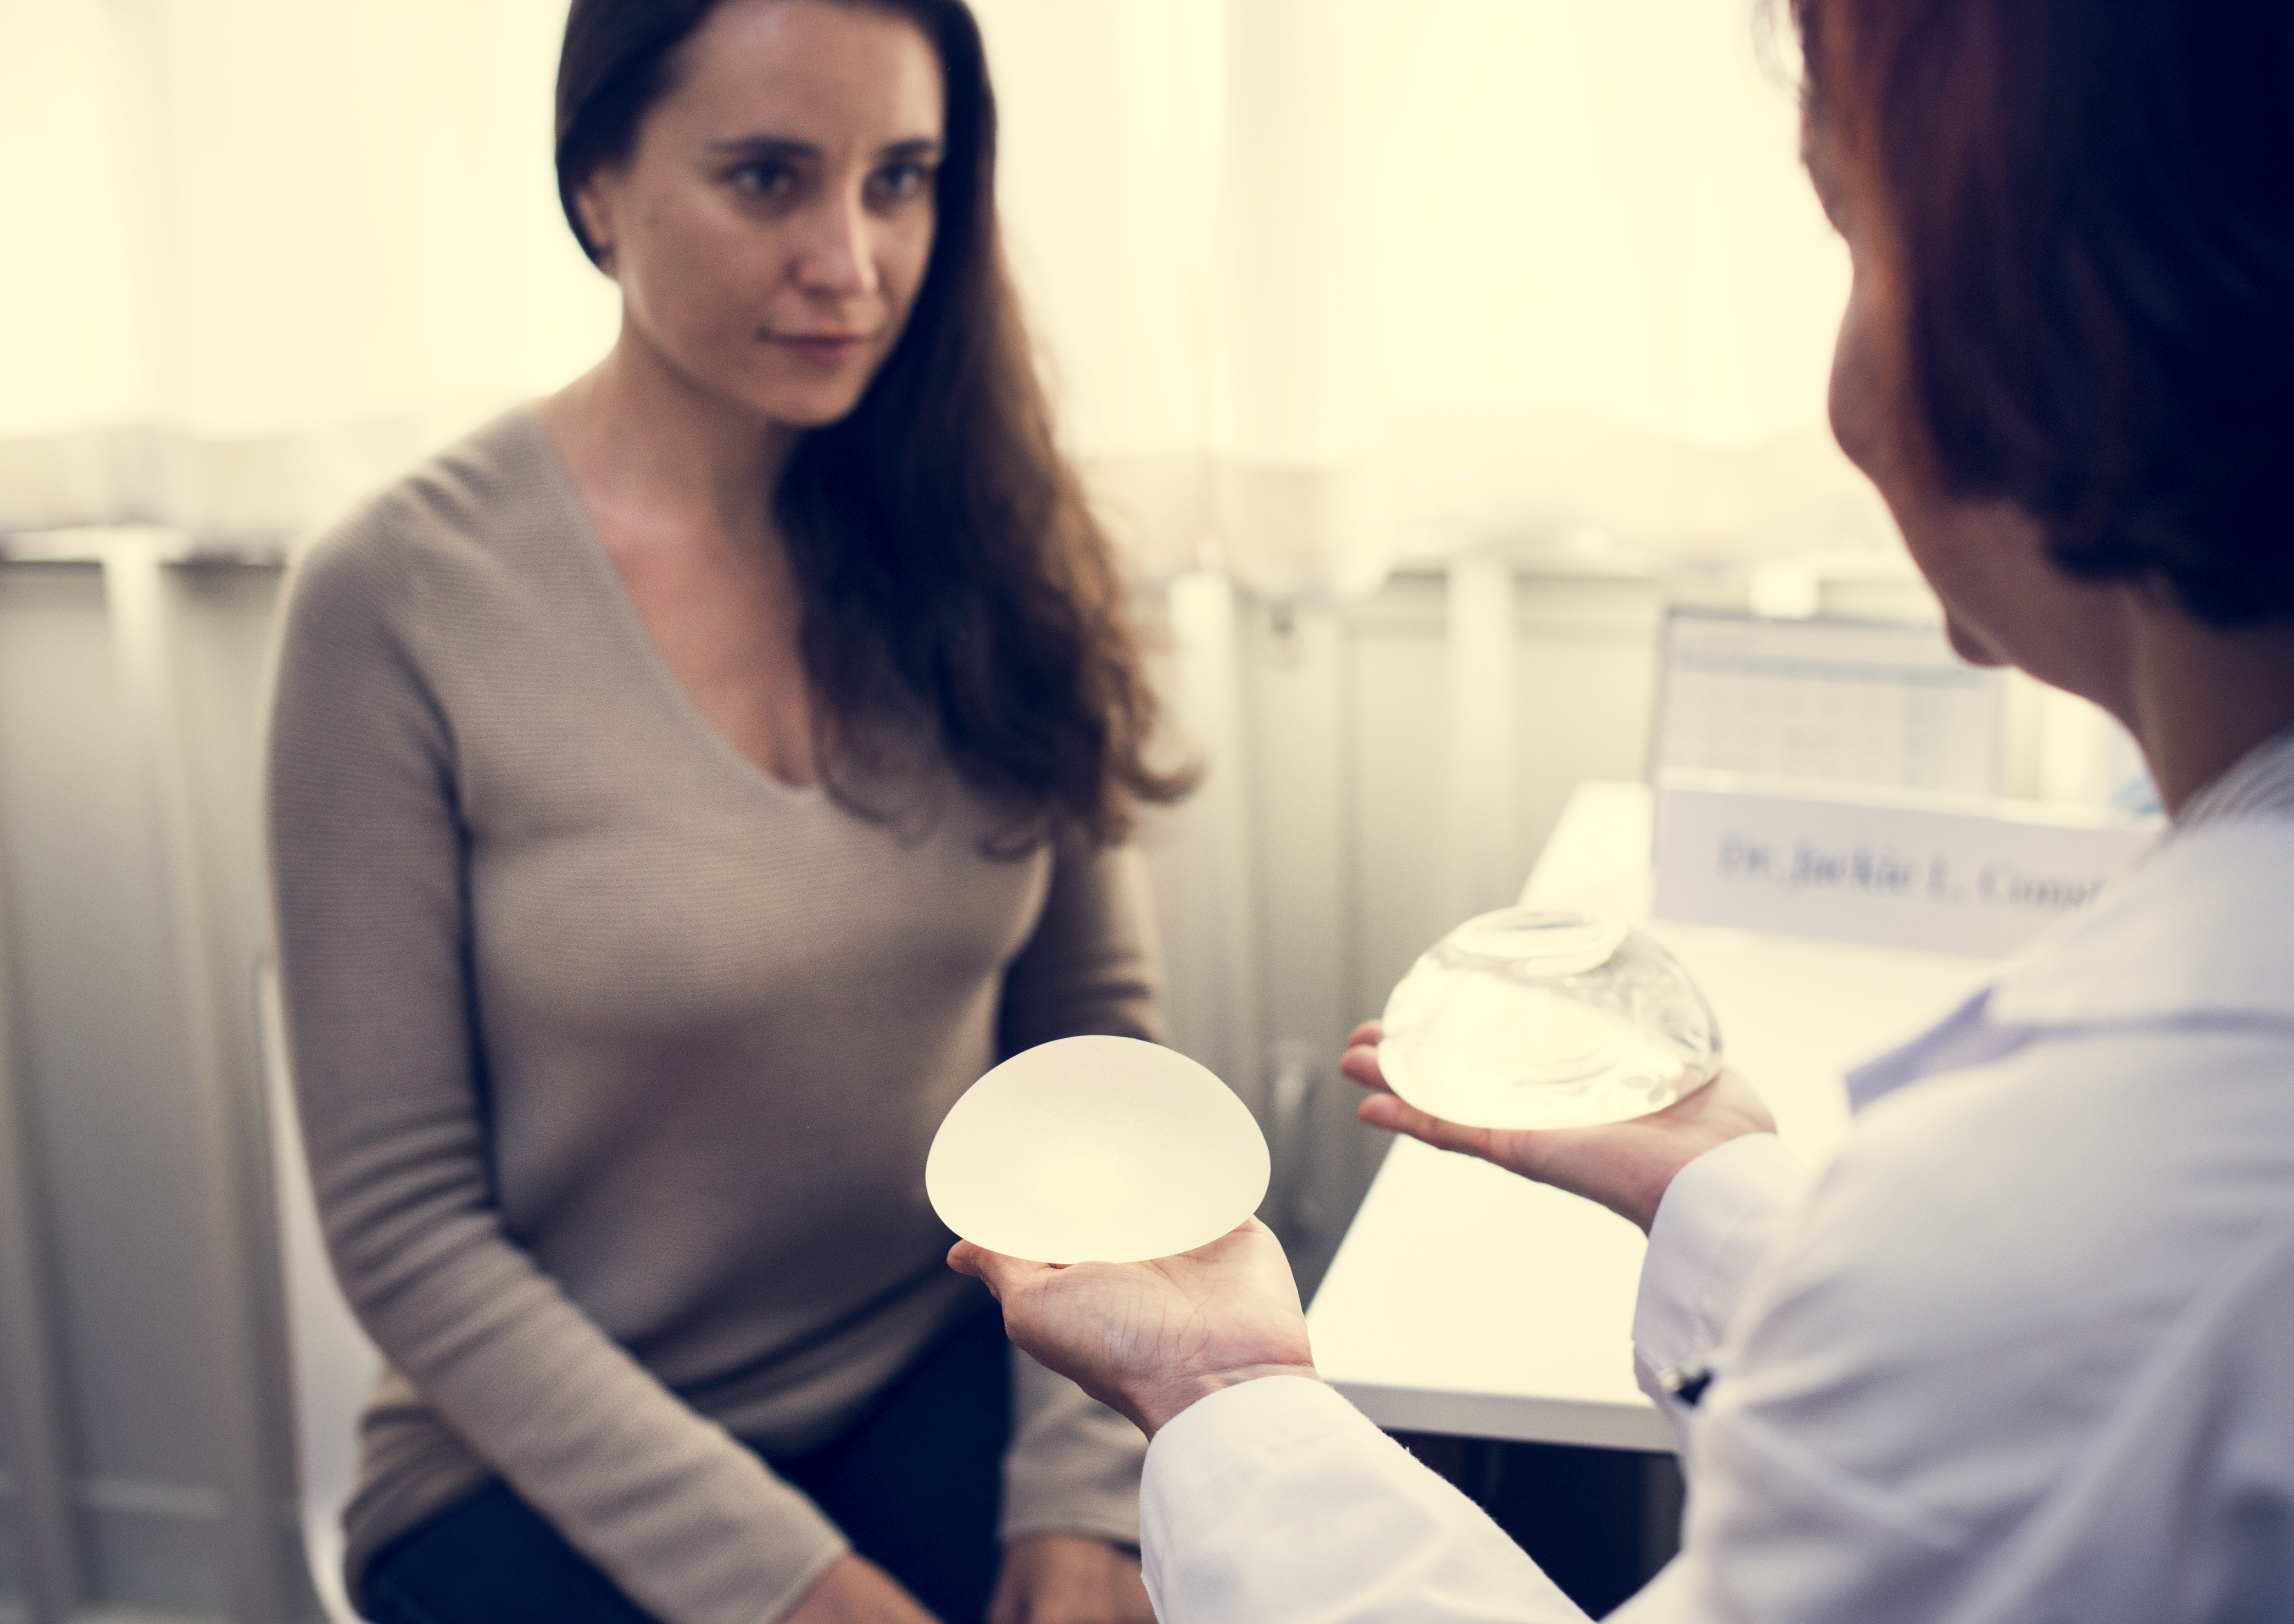 Breast cancer implant study suggests links with illness but has serious flaws